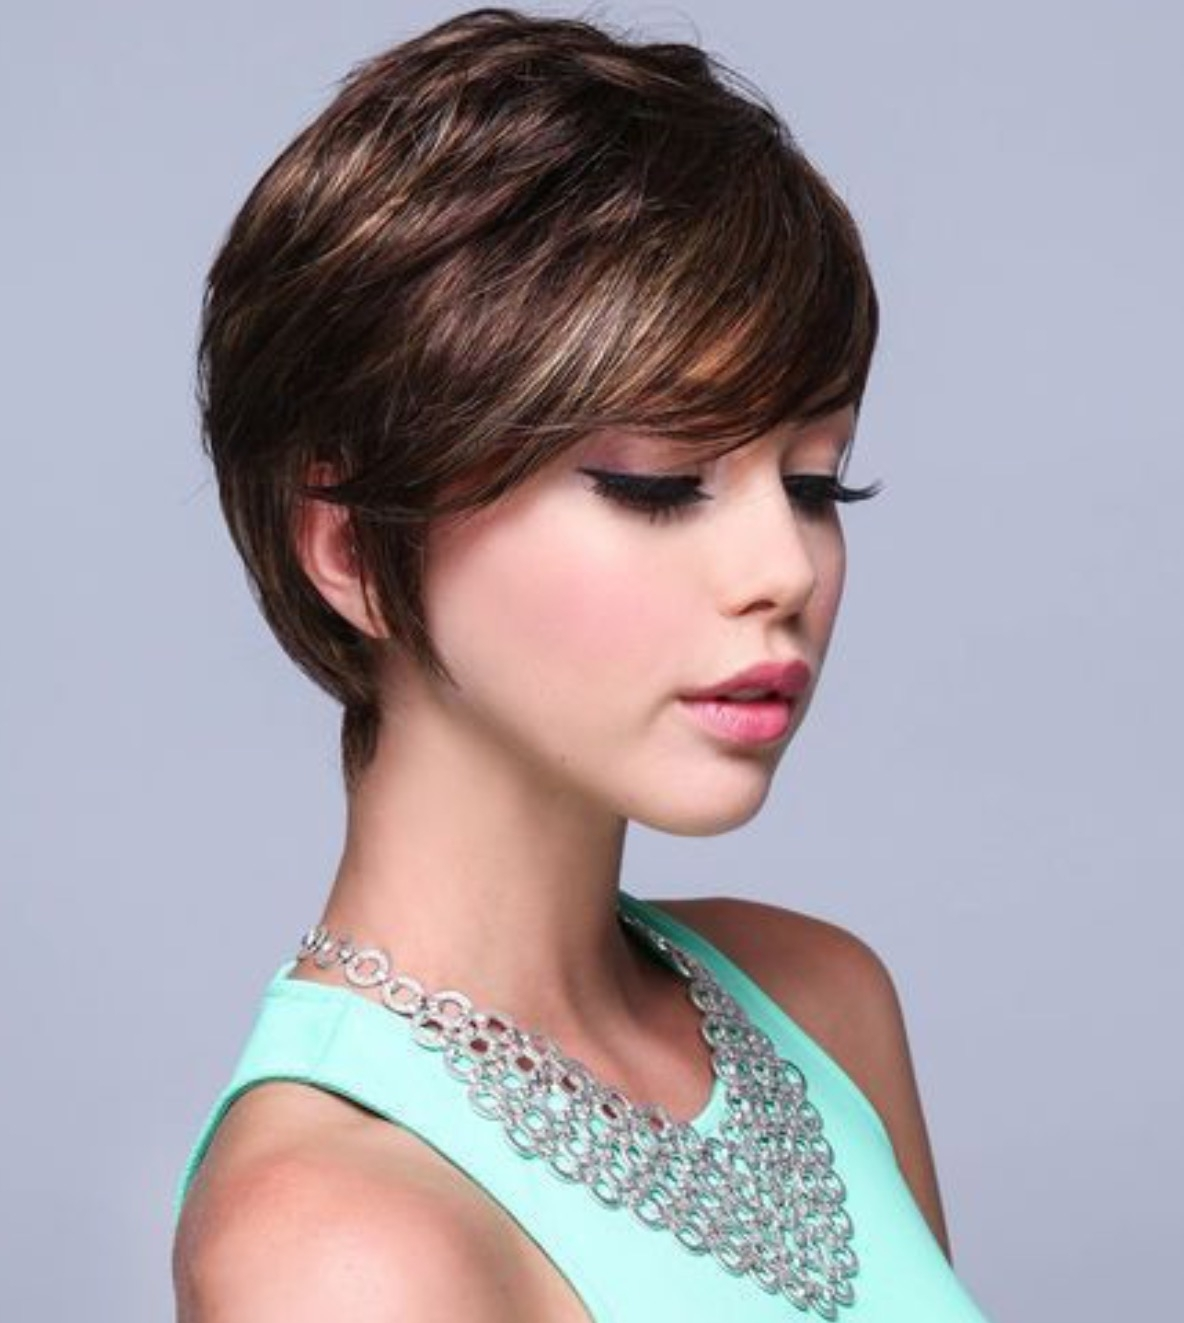 Very Cute Long Pixie Cut | Things That Catch My Eye | Pinterest Within Most Current Medium Pixie Hairstyles (View 6 of 15)